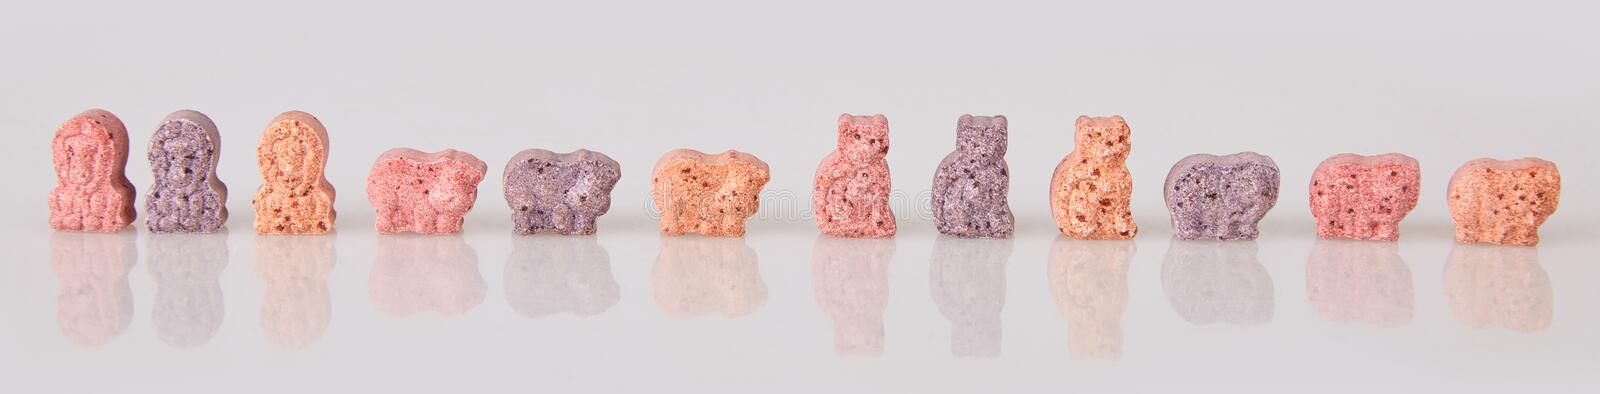 Various vitamins for kids on a white background. stock image